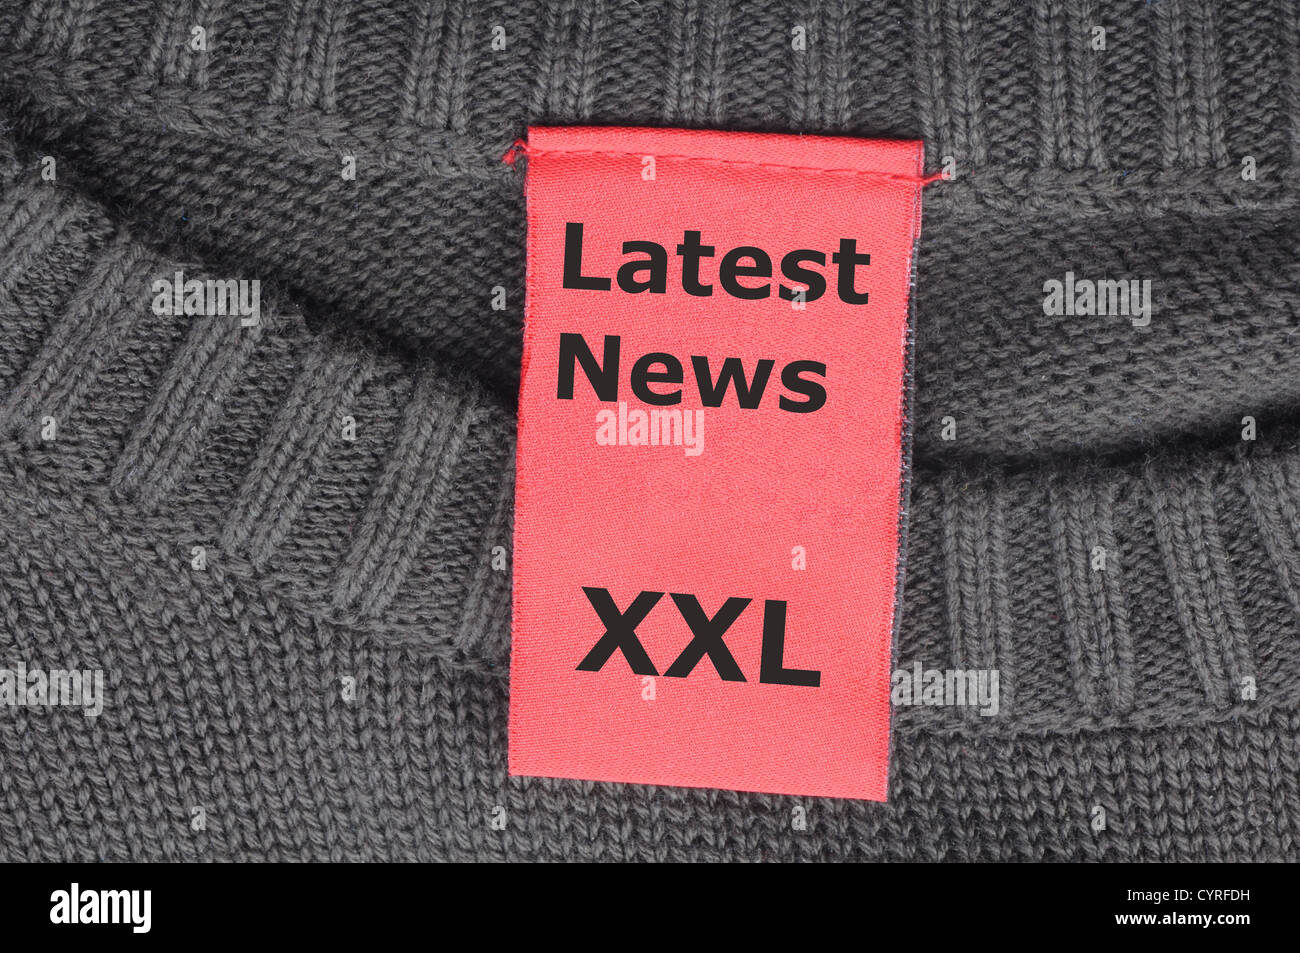 latest news xxl concept with label or tag - Stock Image